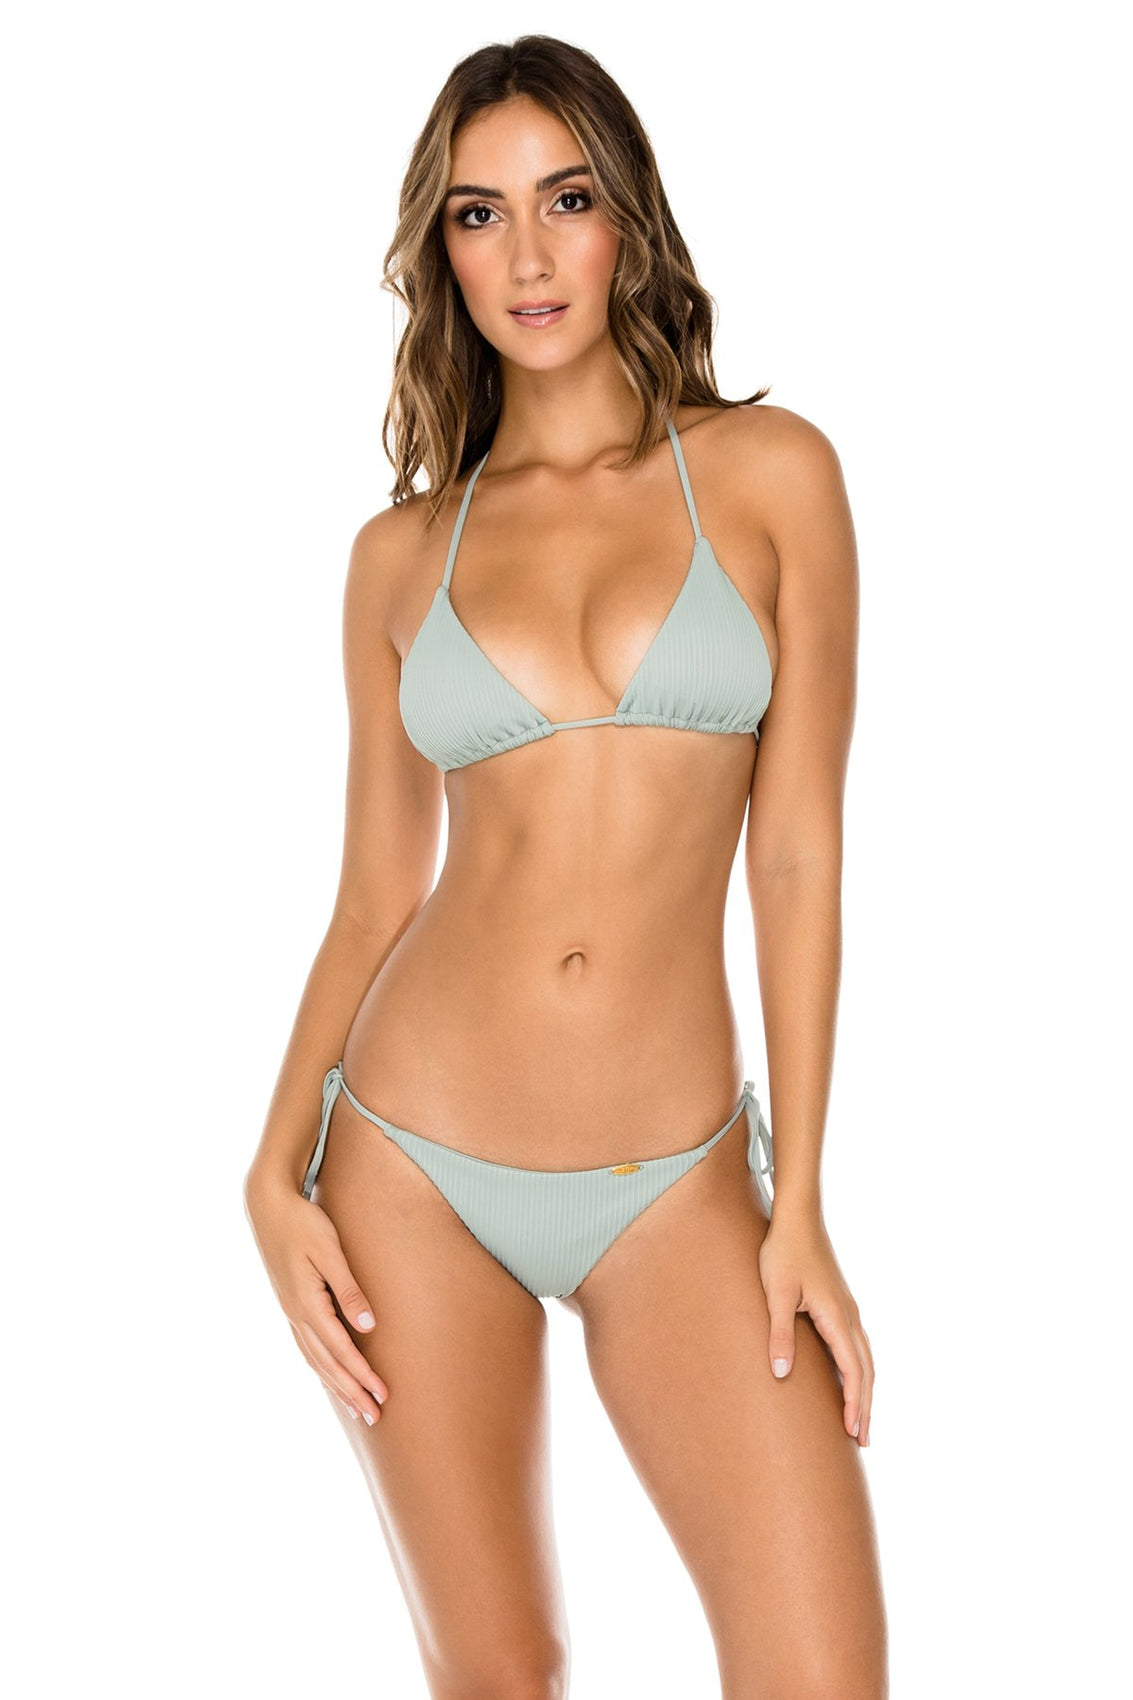 ORILLAS DEL MAR - Triangle Top & Wavey Ruched Back Brazilian Tie Side Bottom • Jardines